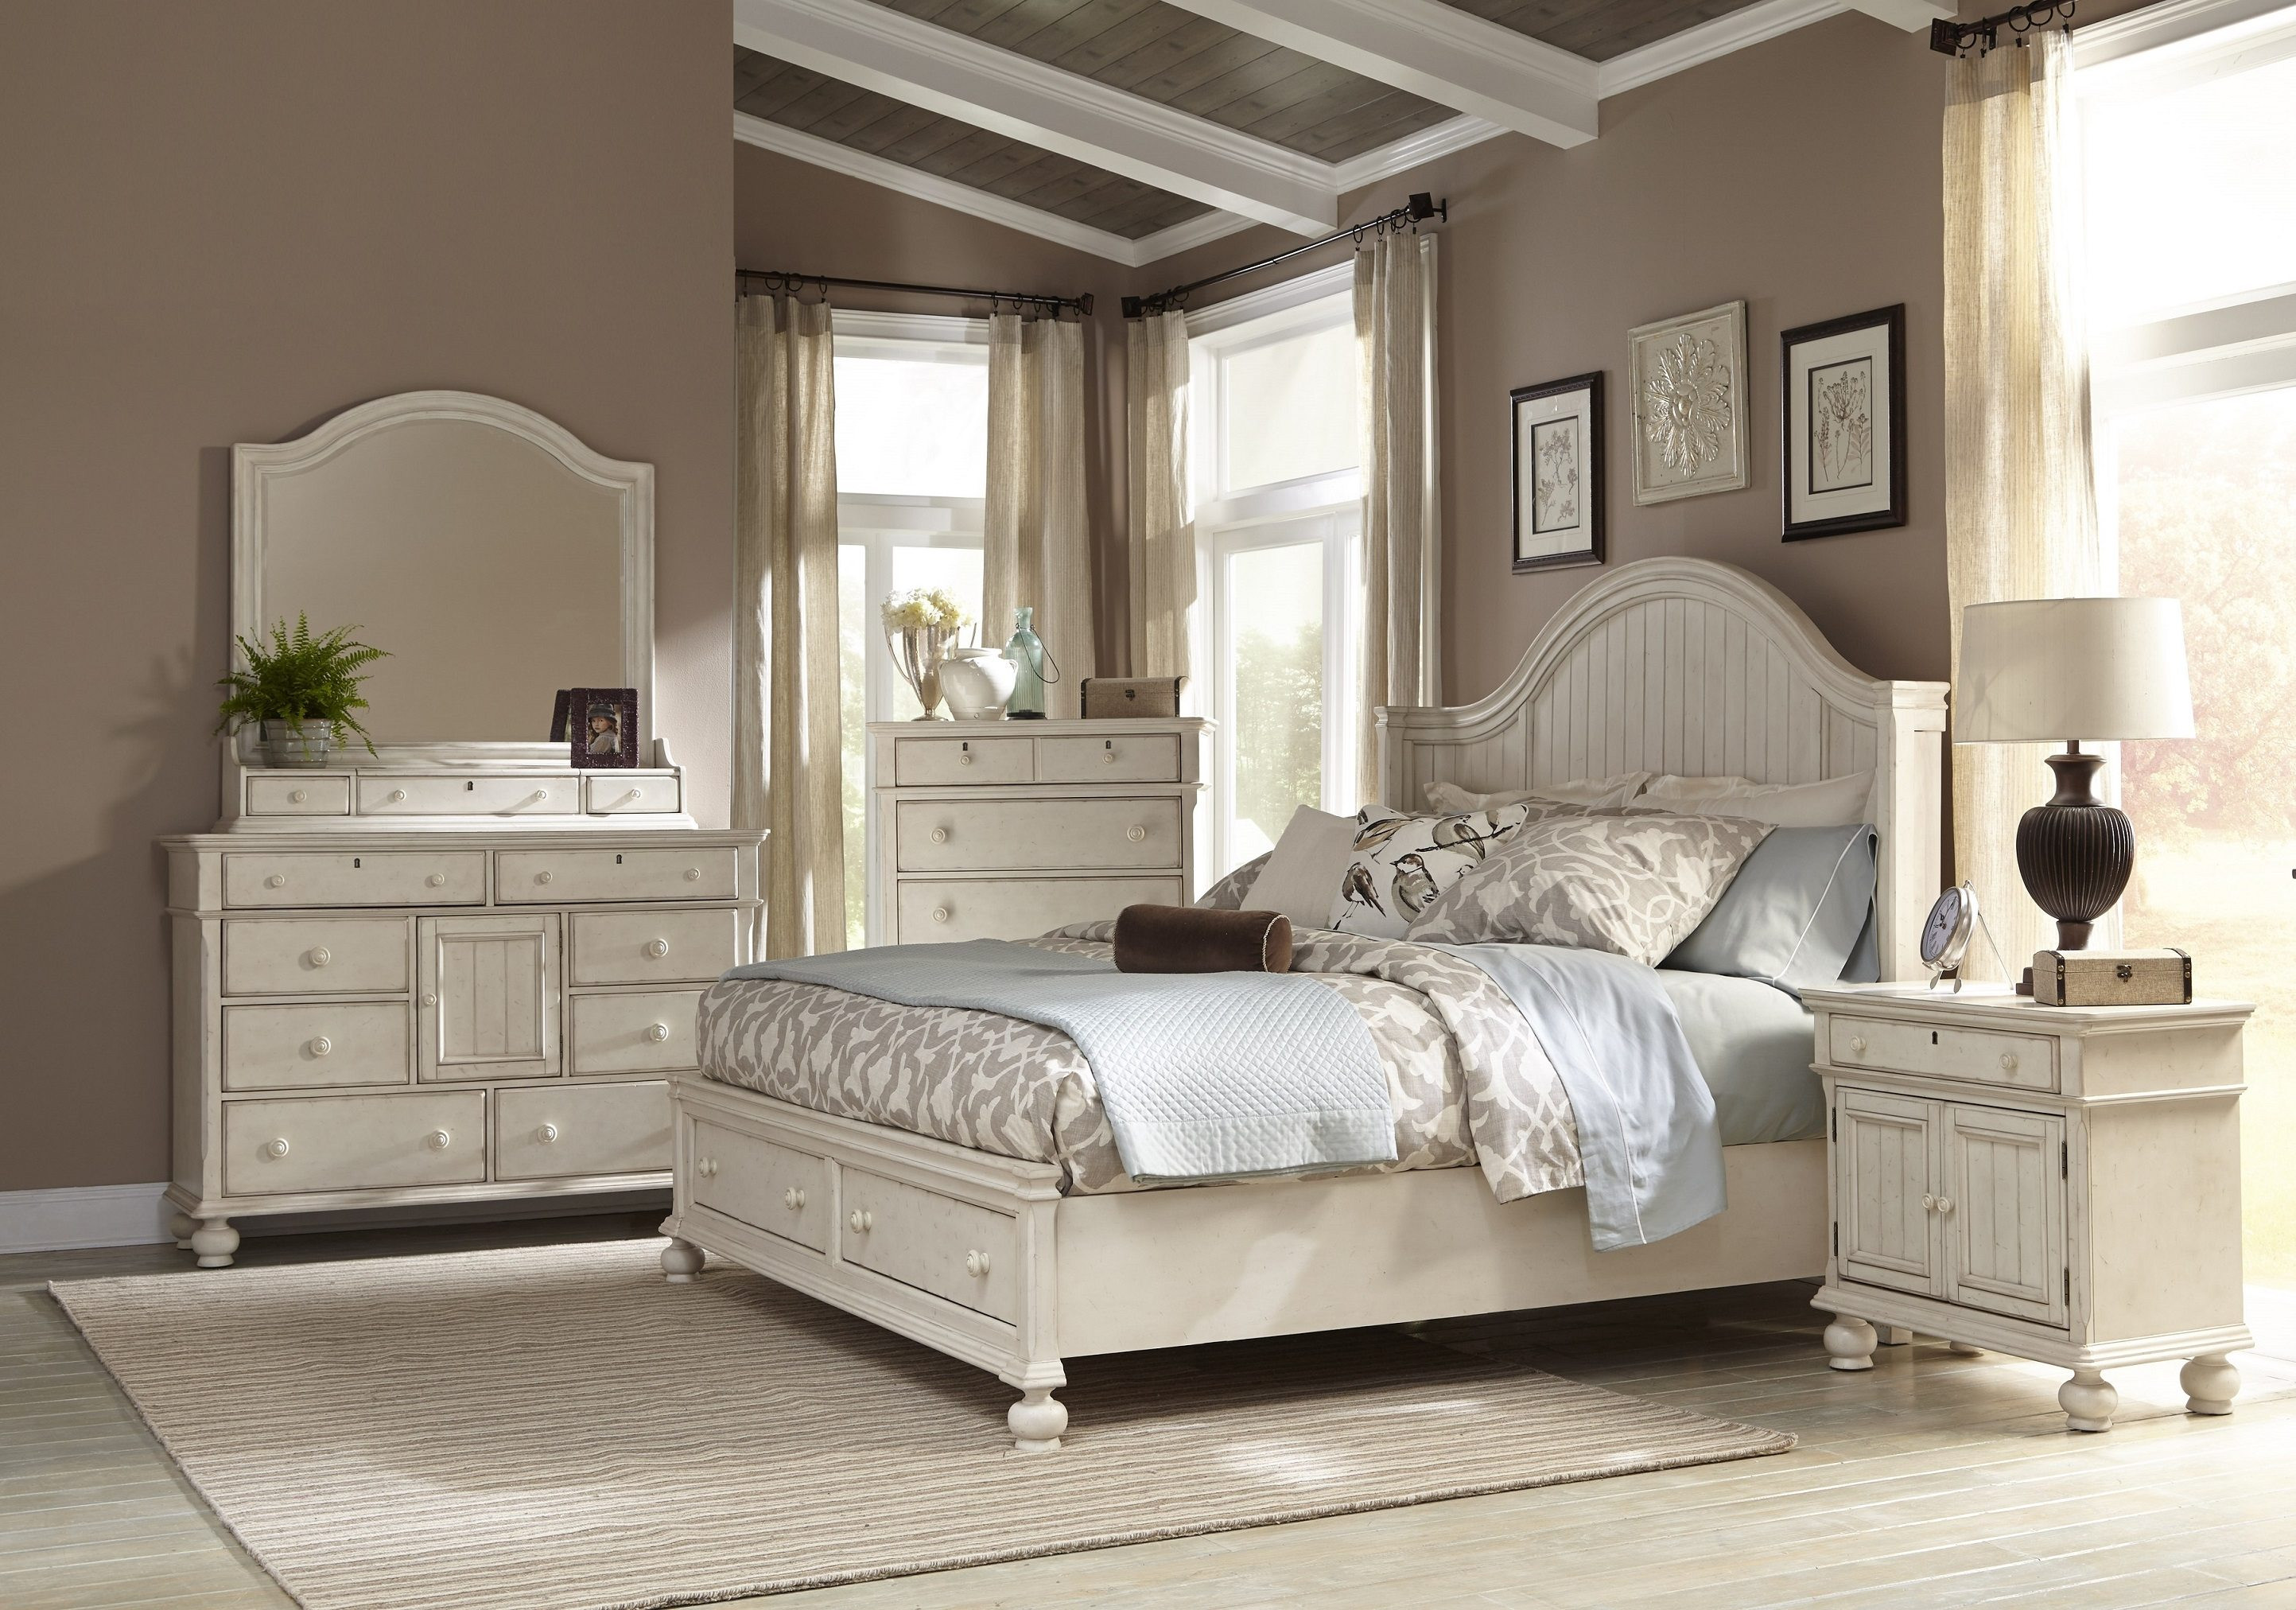 Best ideas about White Queen Bedroom Set . Save or Pin f White Bedroom Furniture Sets Now.